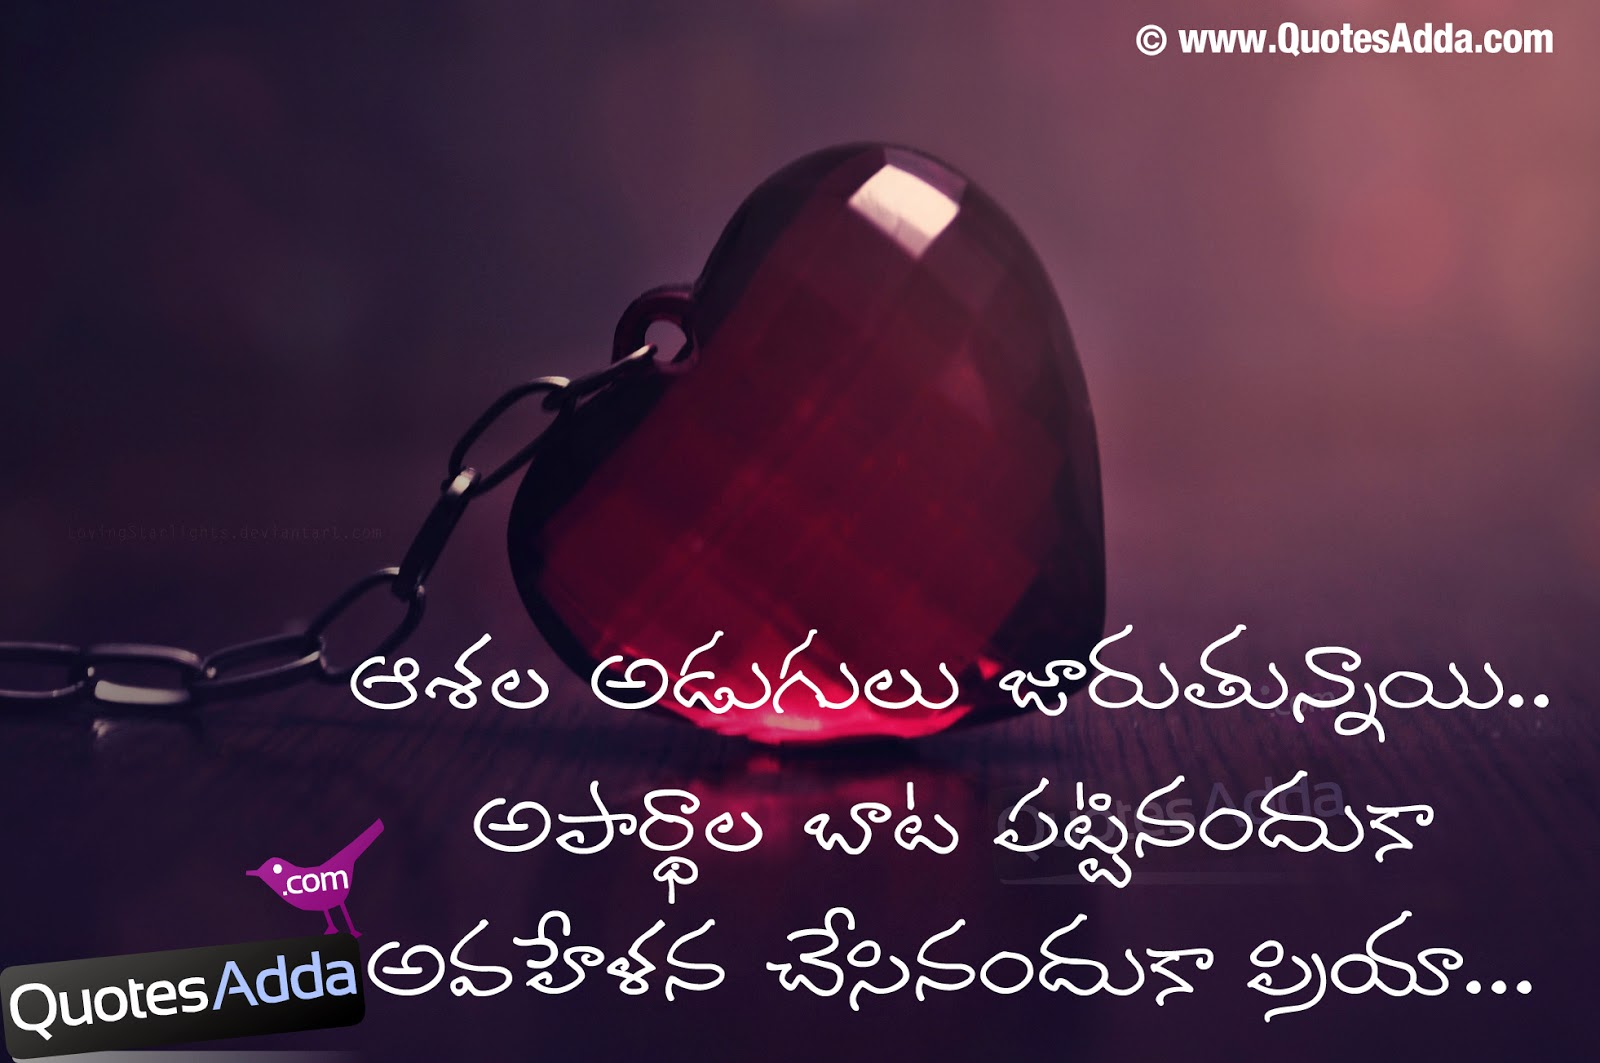 Love Failure Alone Sad Quotes in Telugu QuotesAdda.com Telugu ...